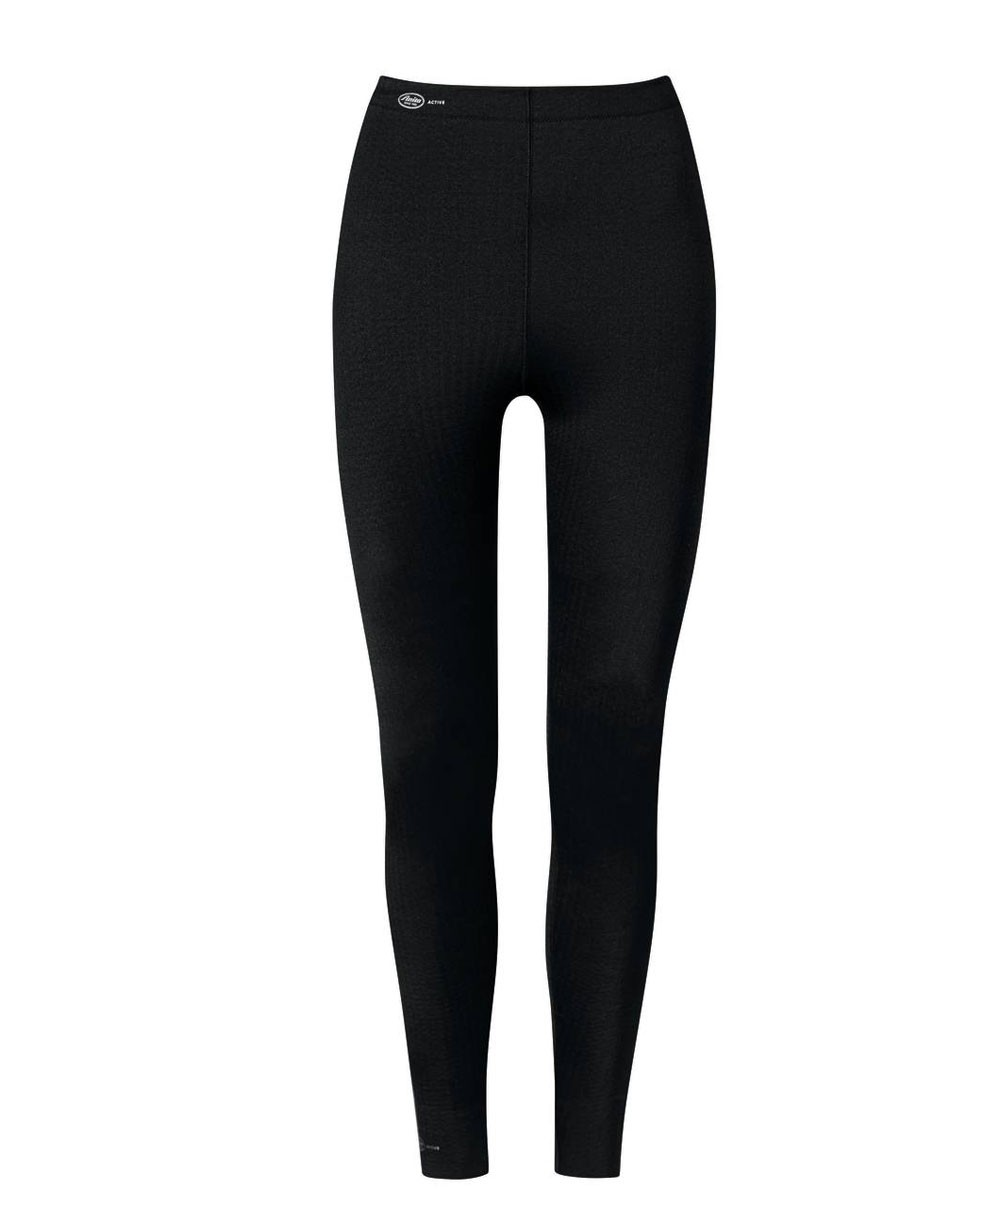 Sport tights massage 1695-2